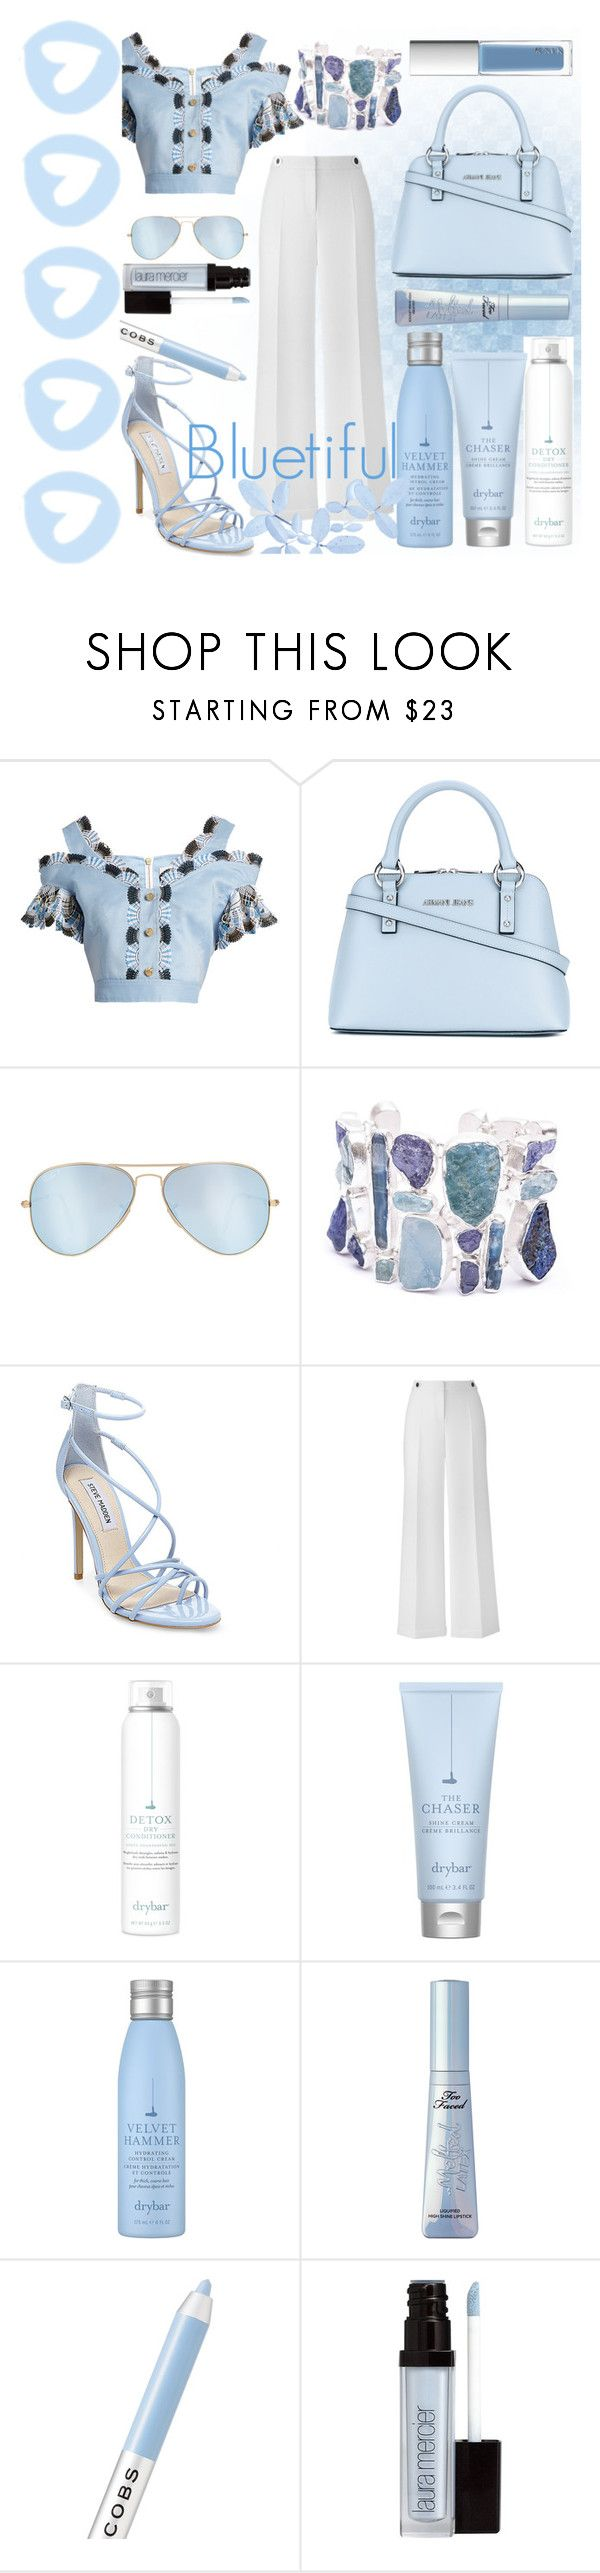 """""""Bluetiful"""" by lullulu ❤ liked on Polyvore featuring Peter Pilotto, Armani Jeans, Ray-Ban, Poppy Jewellery, Steve Madden, Drybar, Marc Jacobs, Laura Mercier and RMK"""